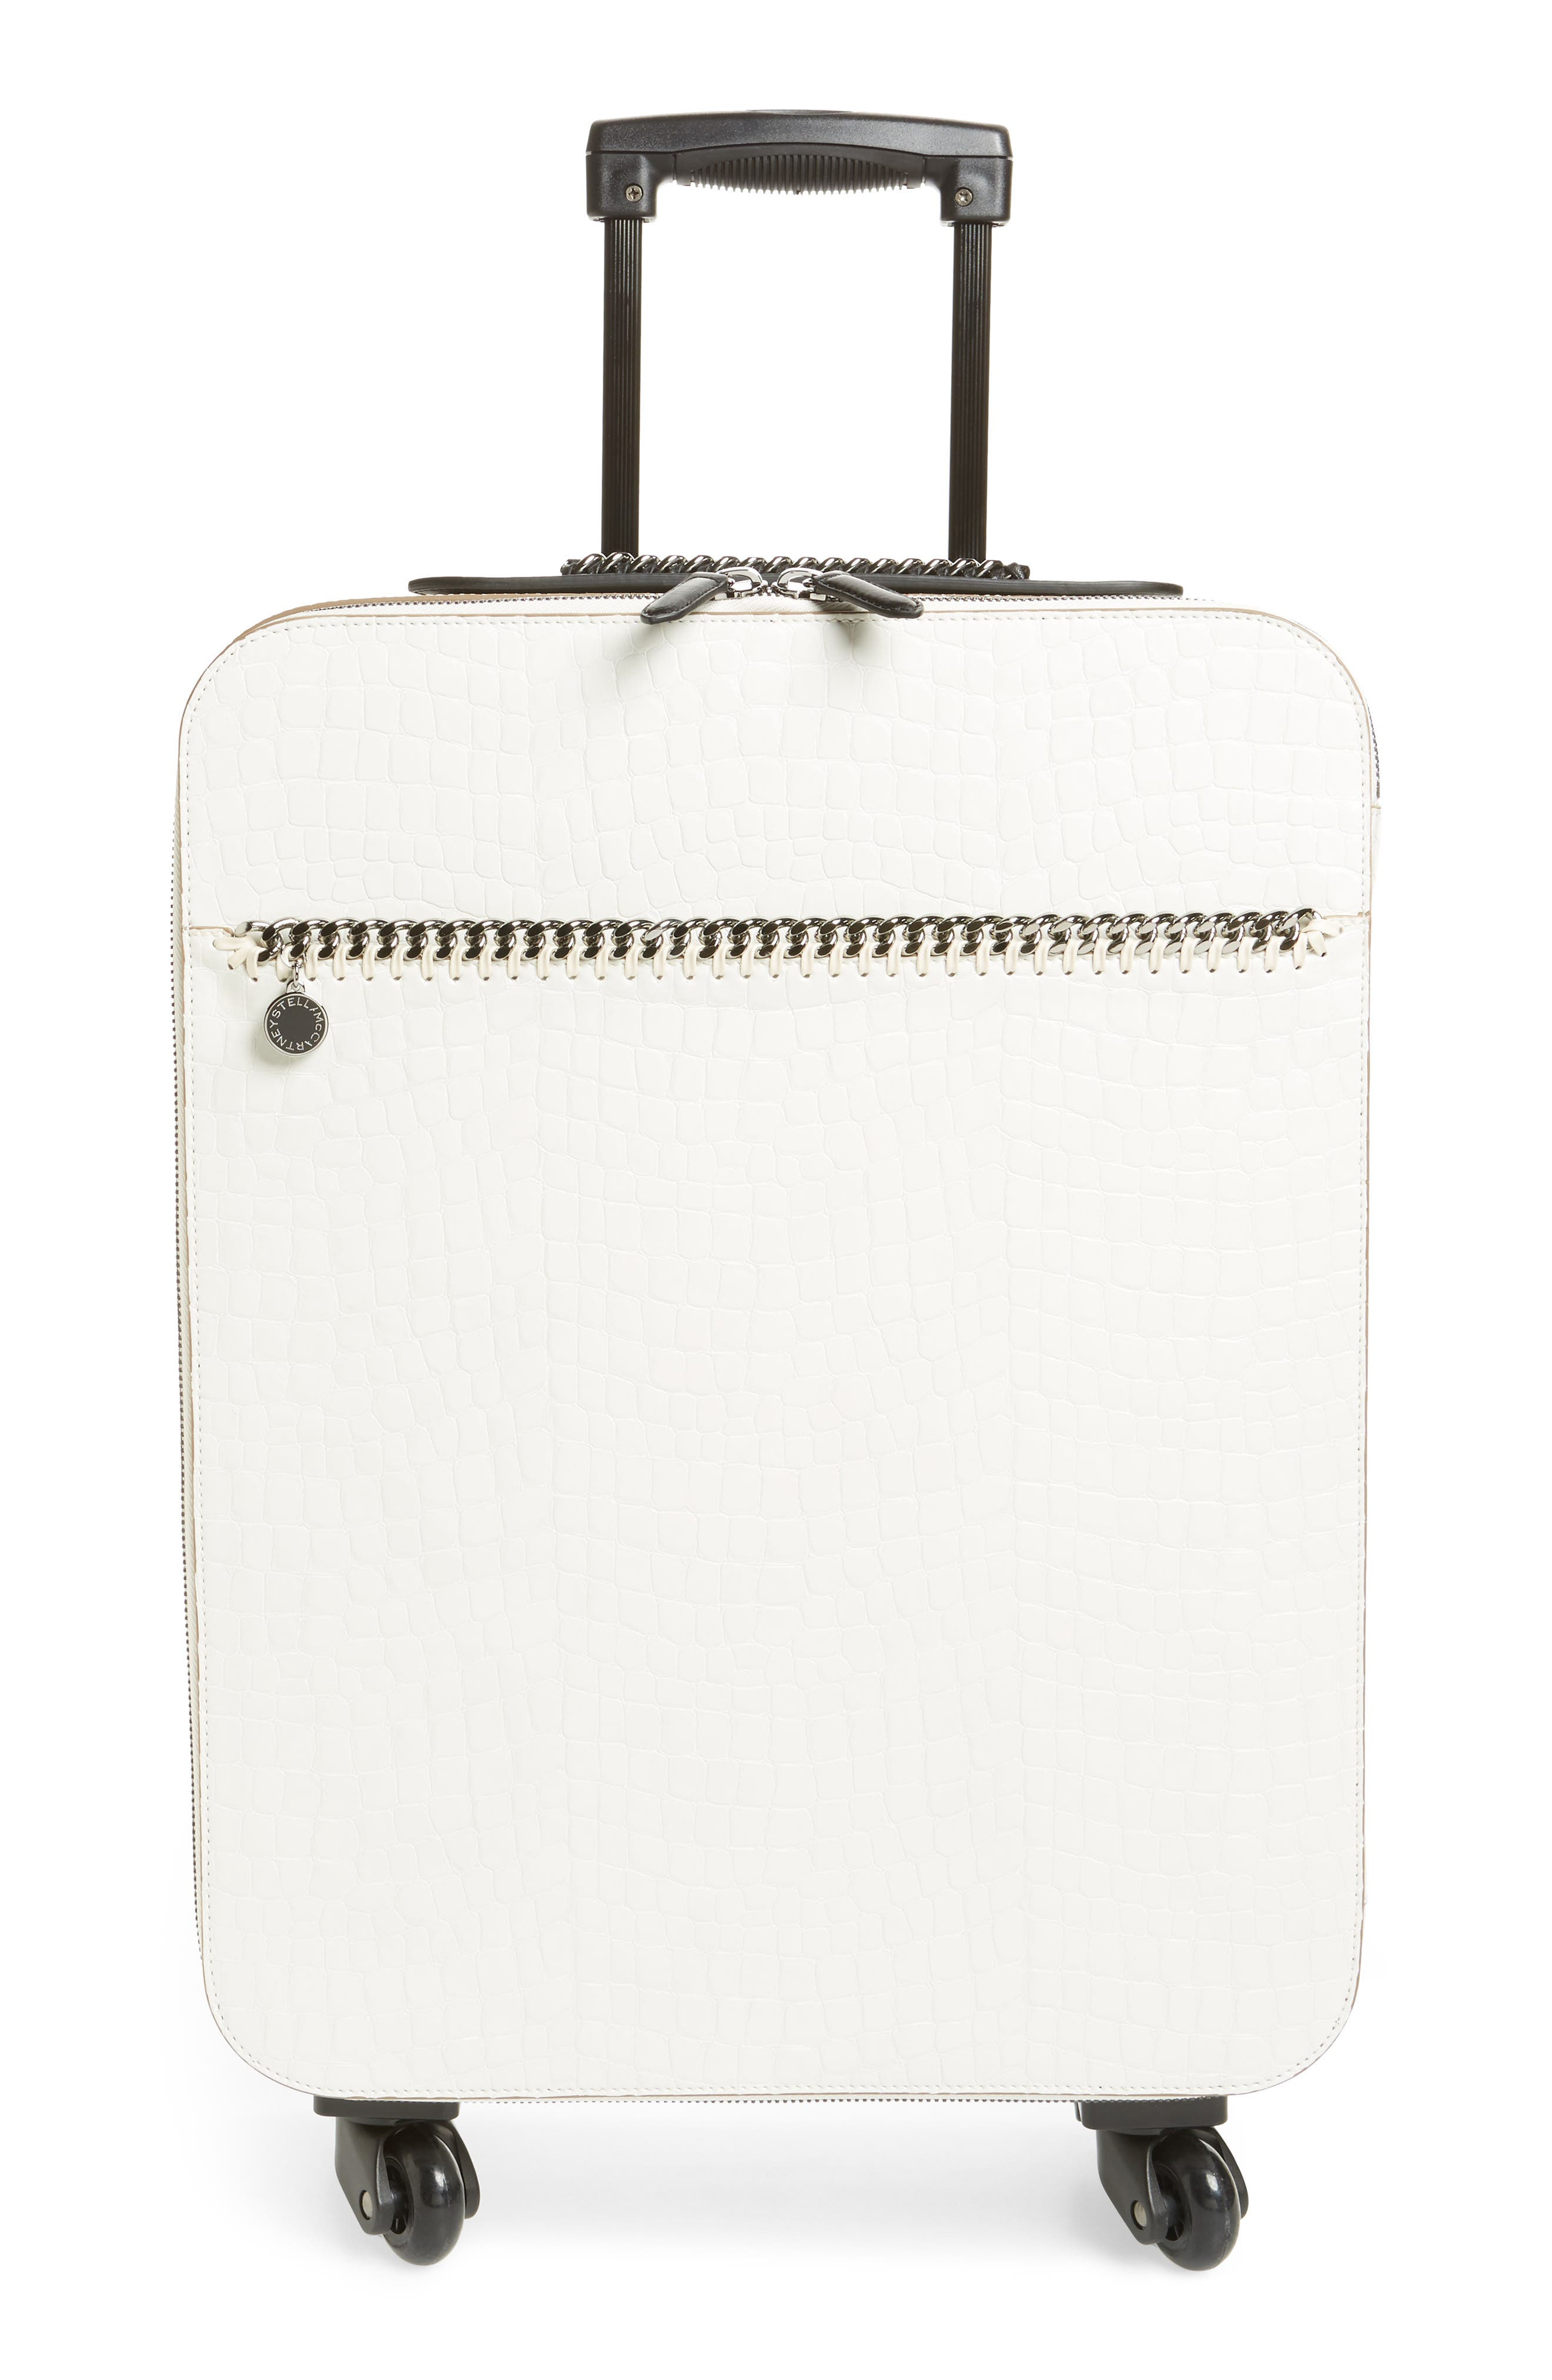 20-Inch Alter Croc Faux Leather Trolley Case,                             Main thumbnail 1, color,                             900